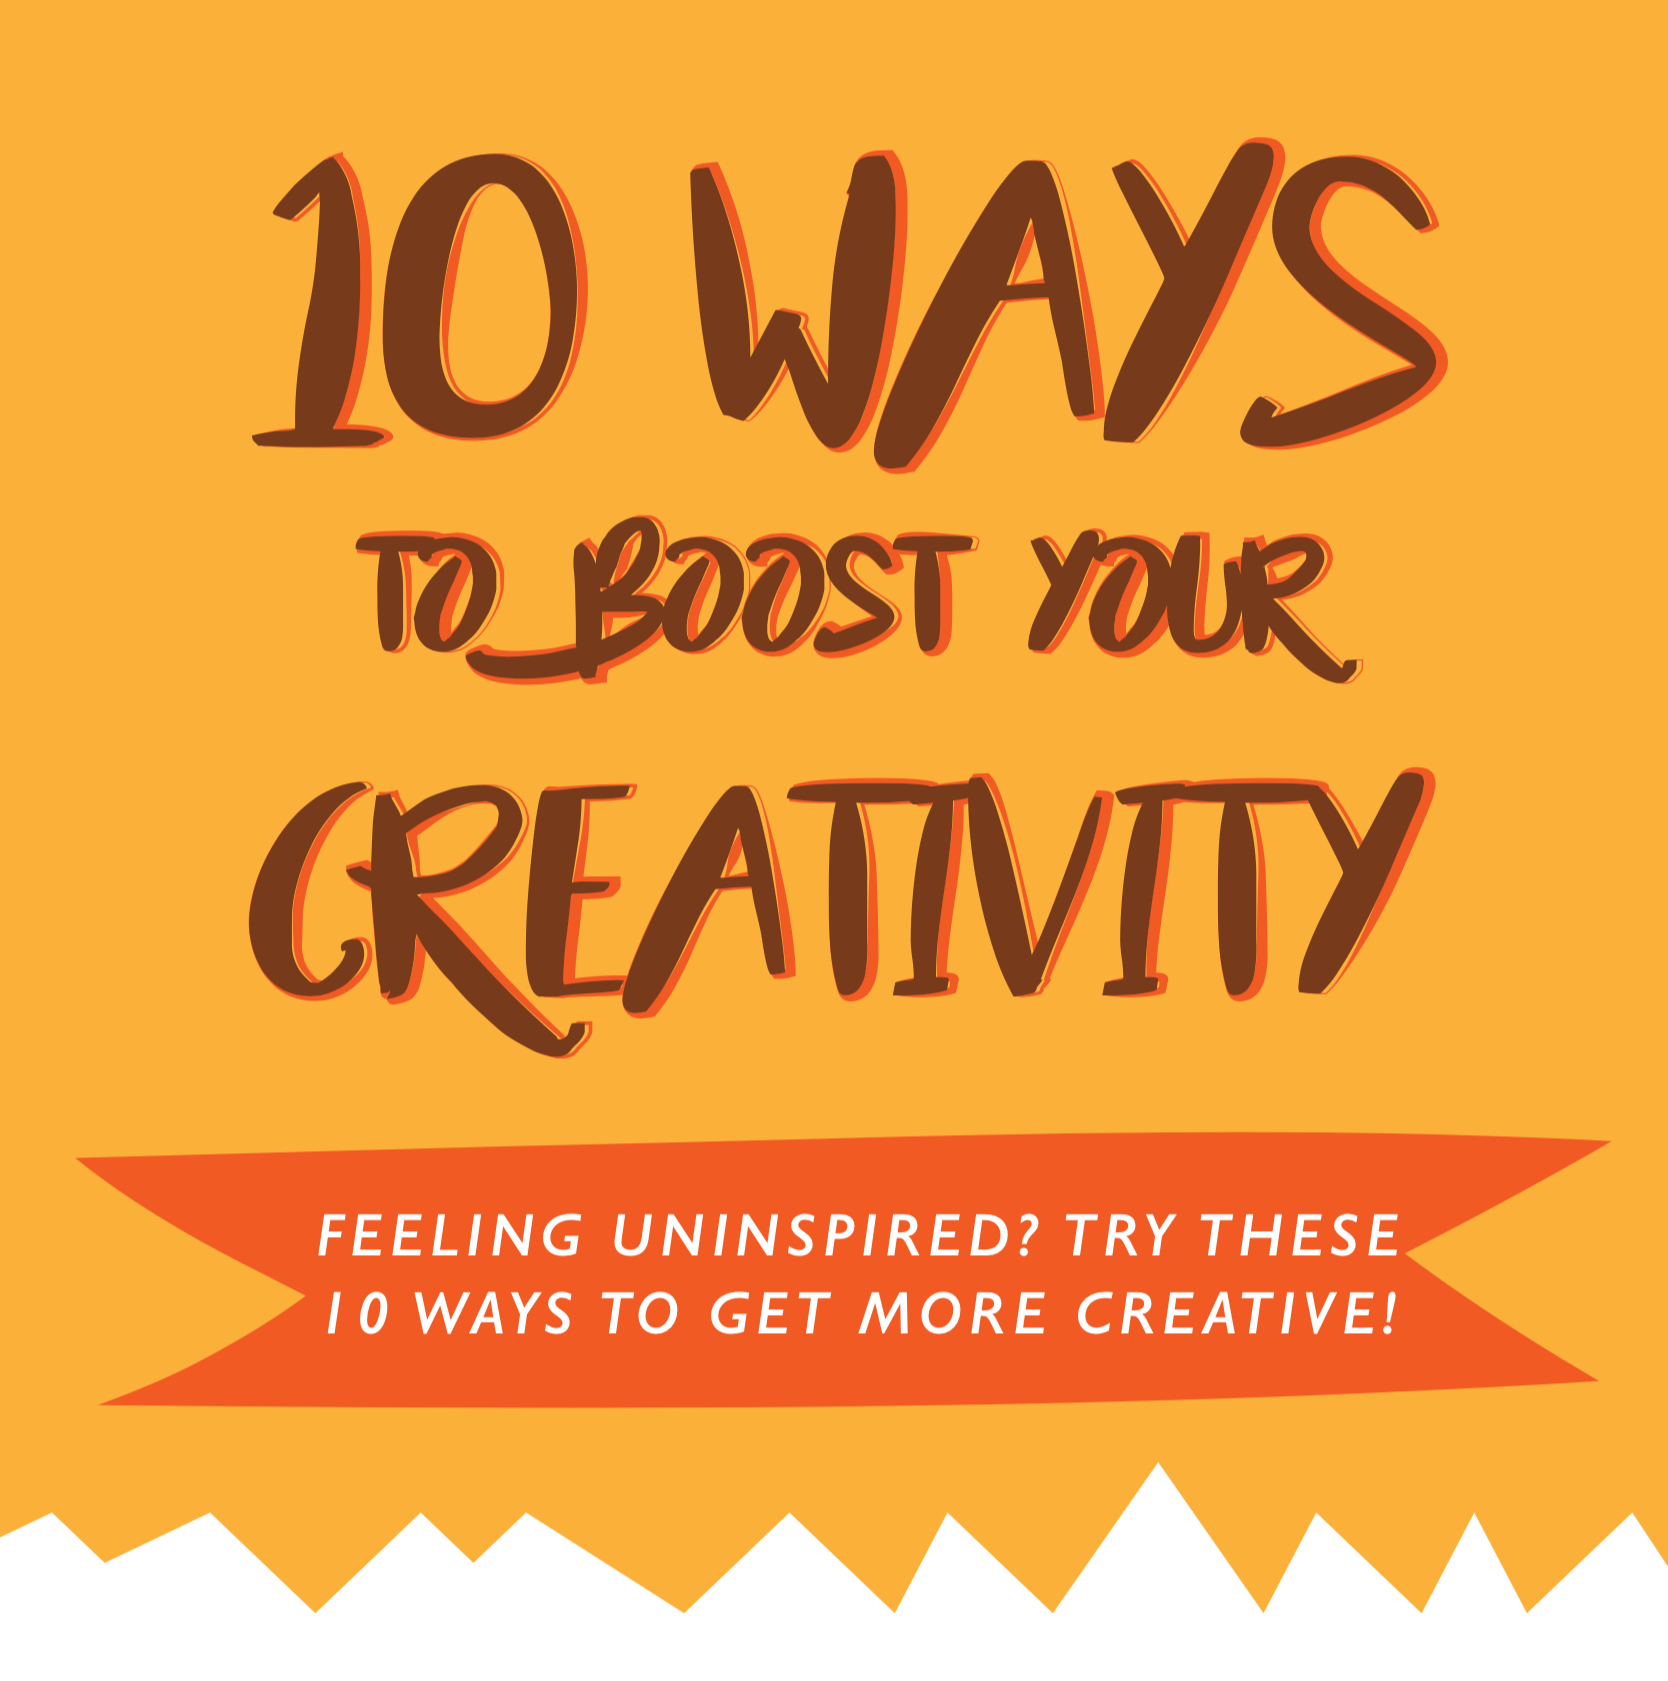 10 Ways to Boost Your Creativity: Free PDF Visualization by ANNETTE KIM